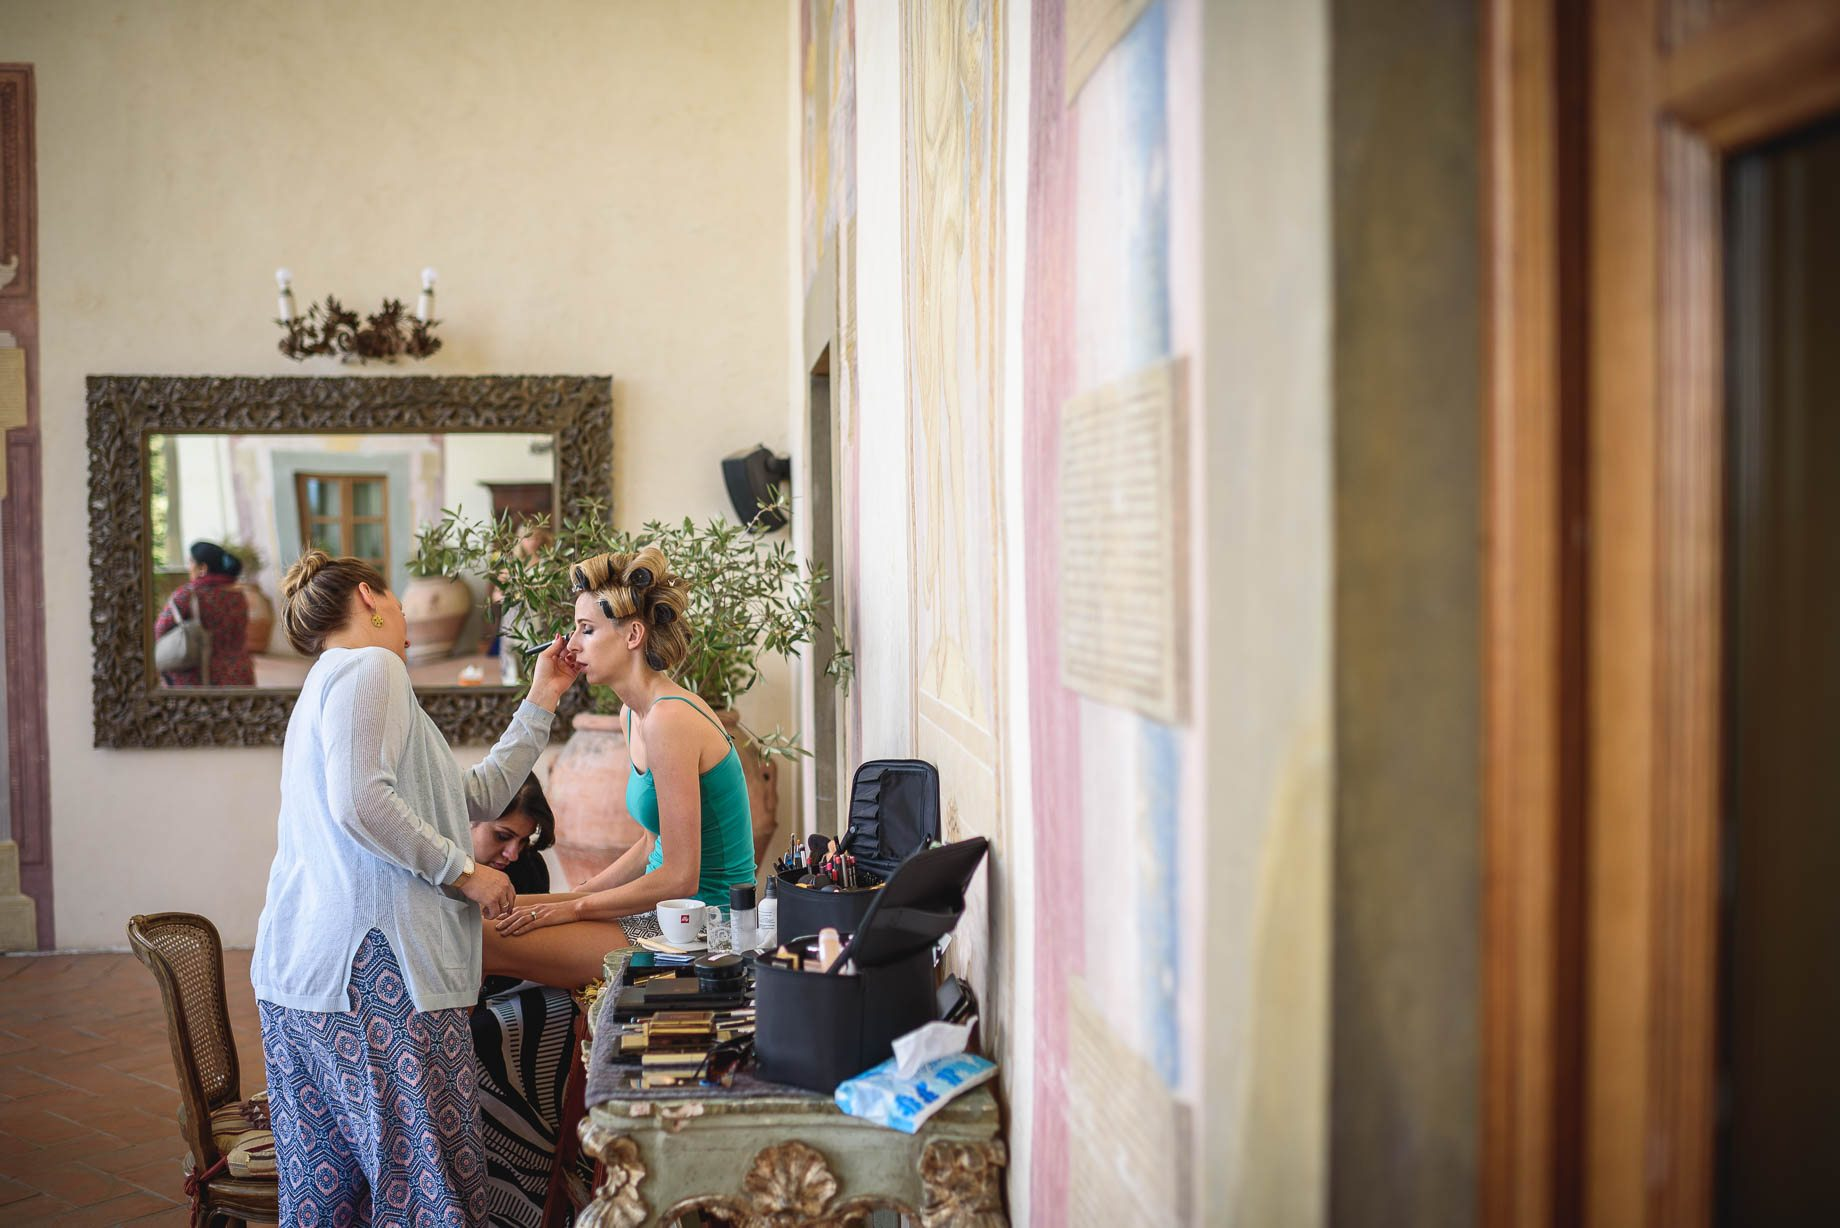 Tuscany wedding photography - Roisin and Moubin - Guy Collier Photography (34 of 194)